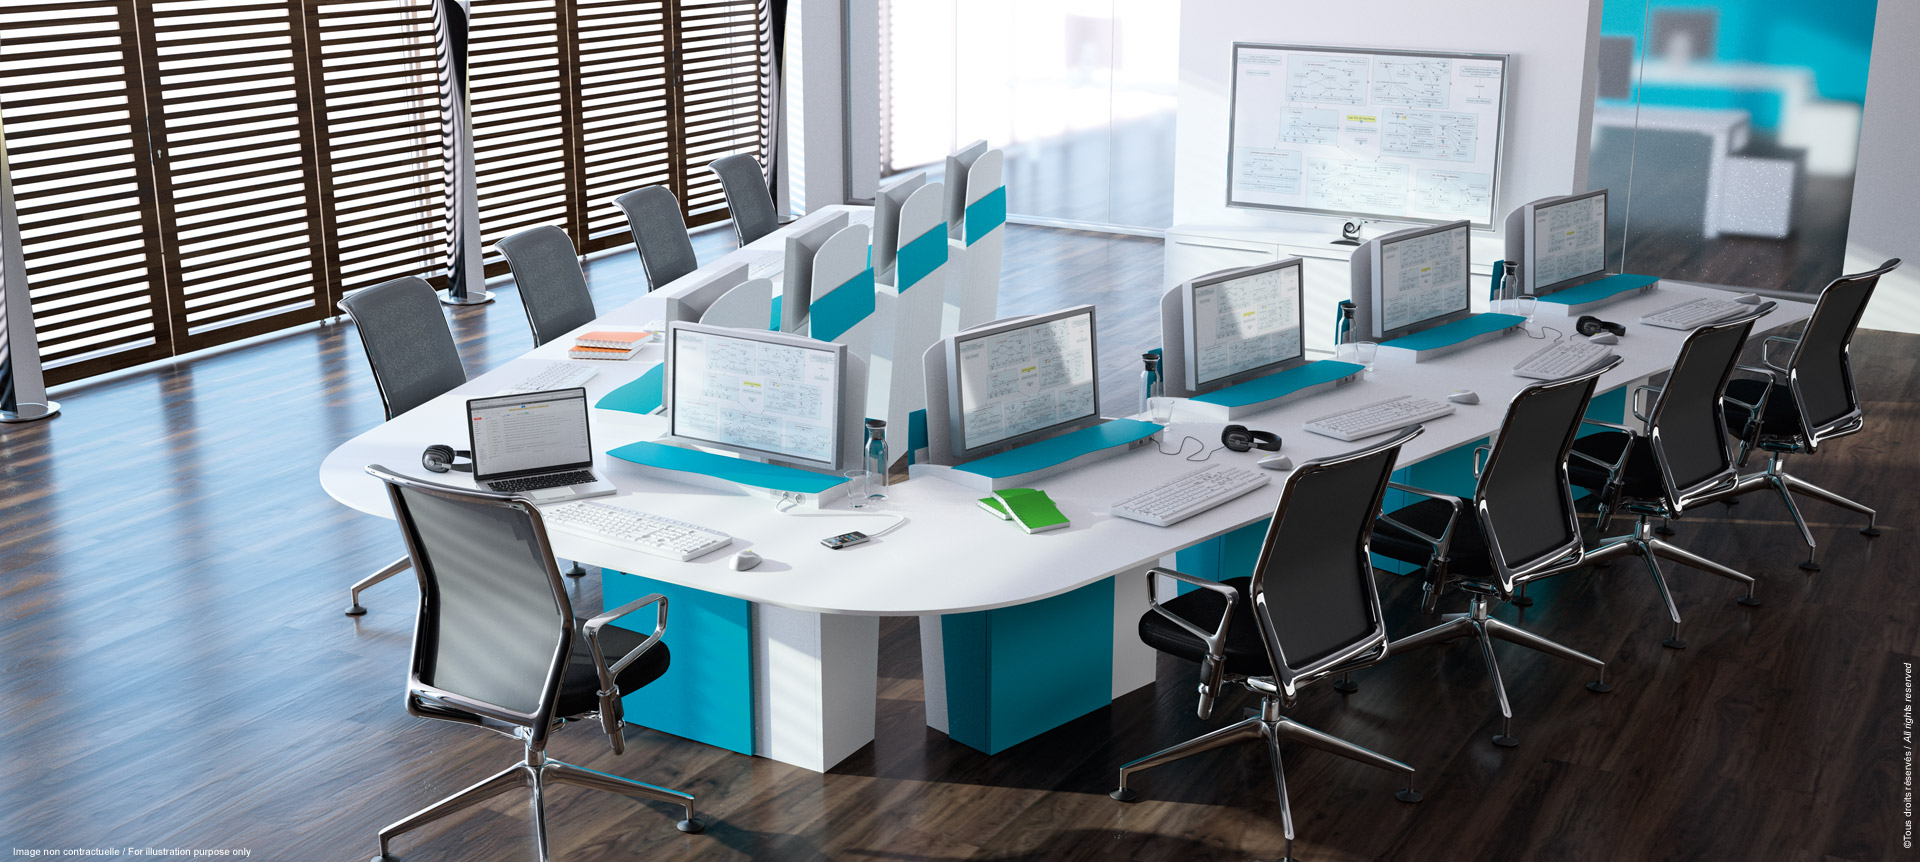 I-RISE - The versatile meeting table for training, coworking